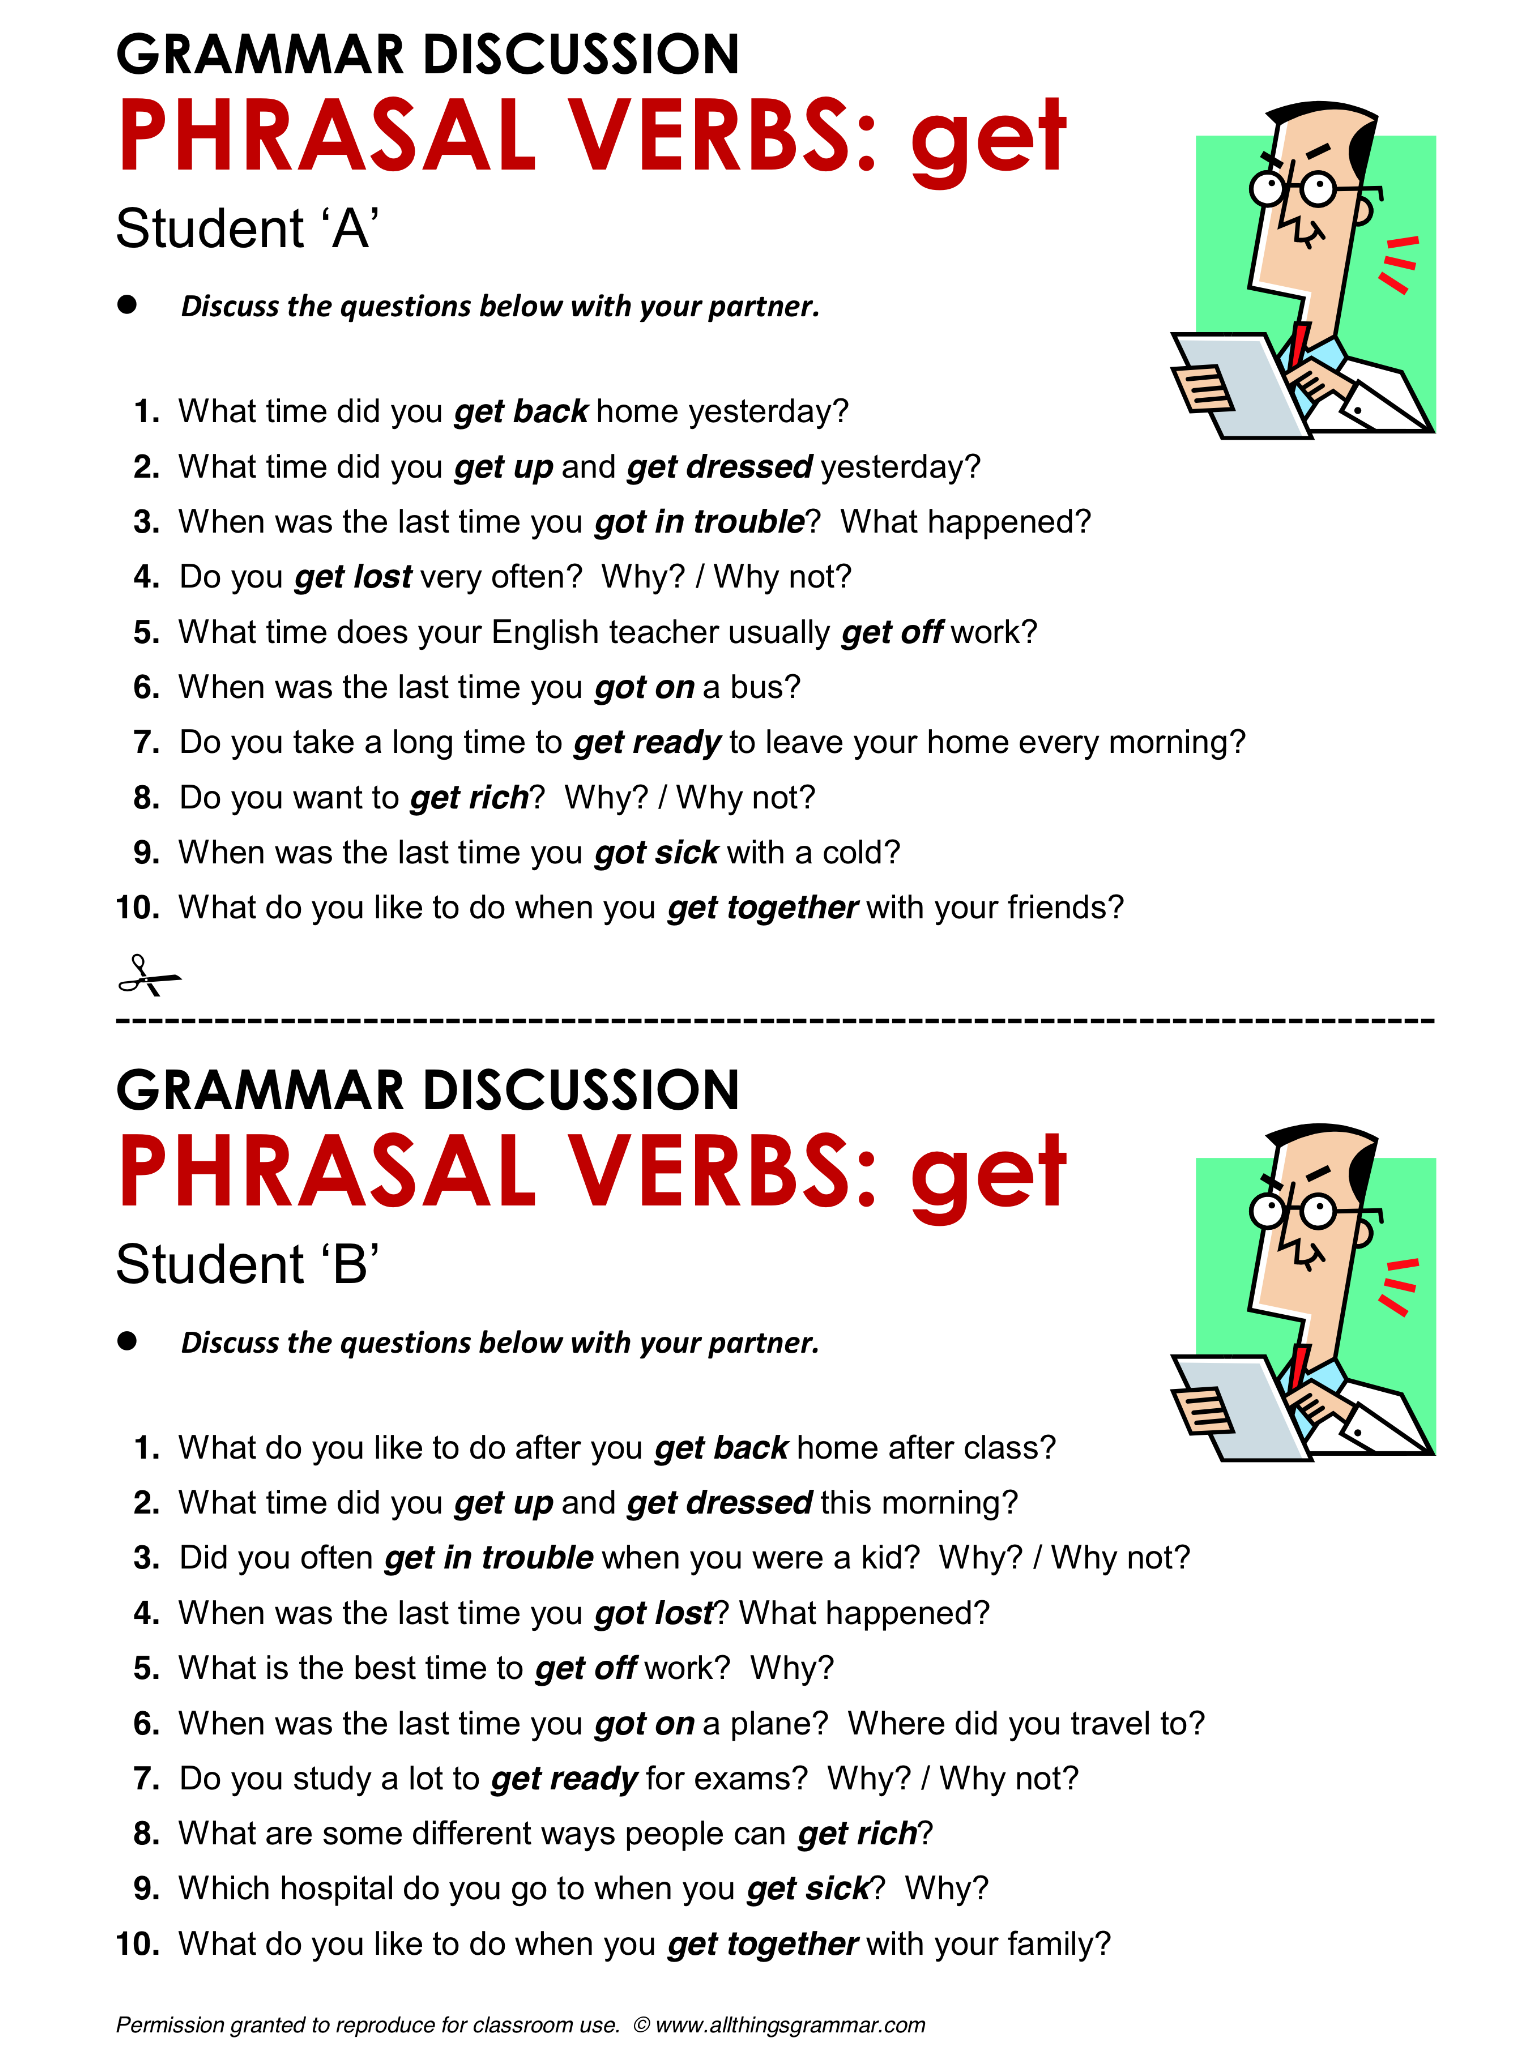 English Grammar Phrasal Verbs With Get